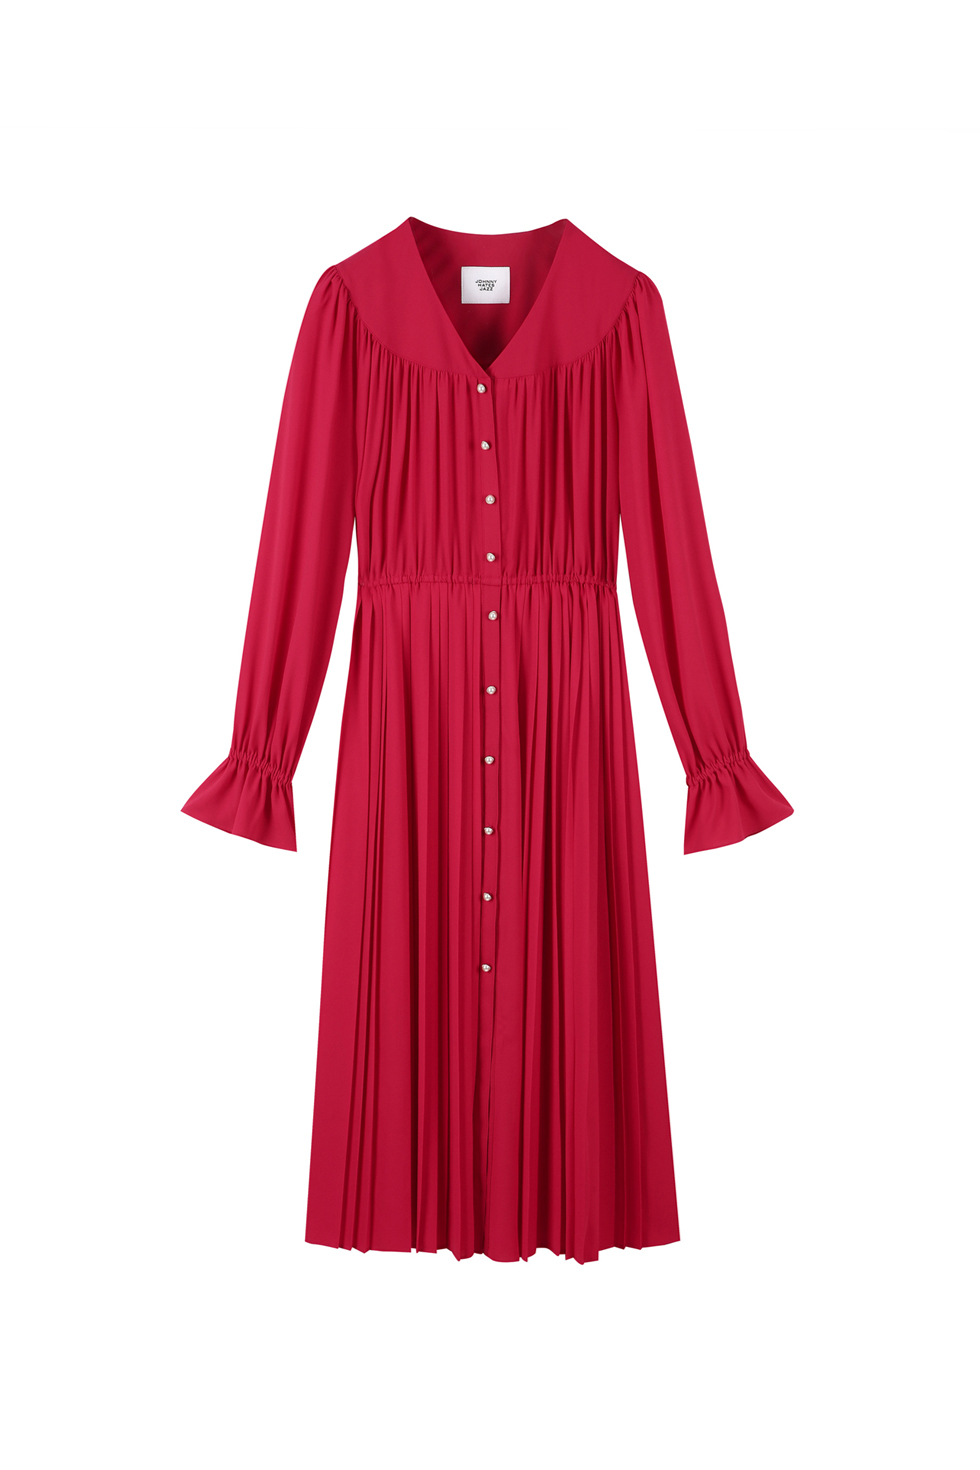 PEARL BUTTON PLEATS DRESS - RED